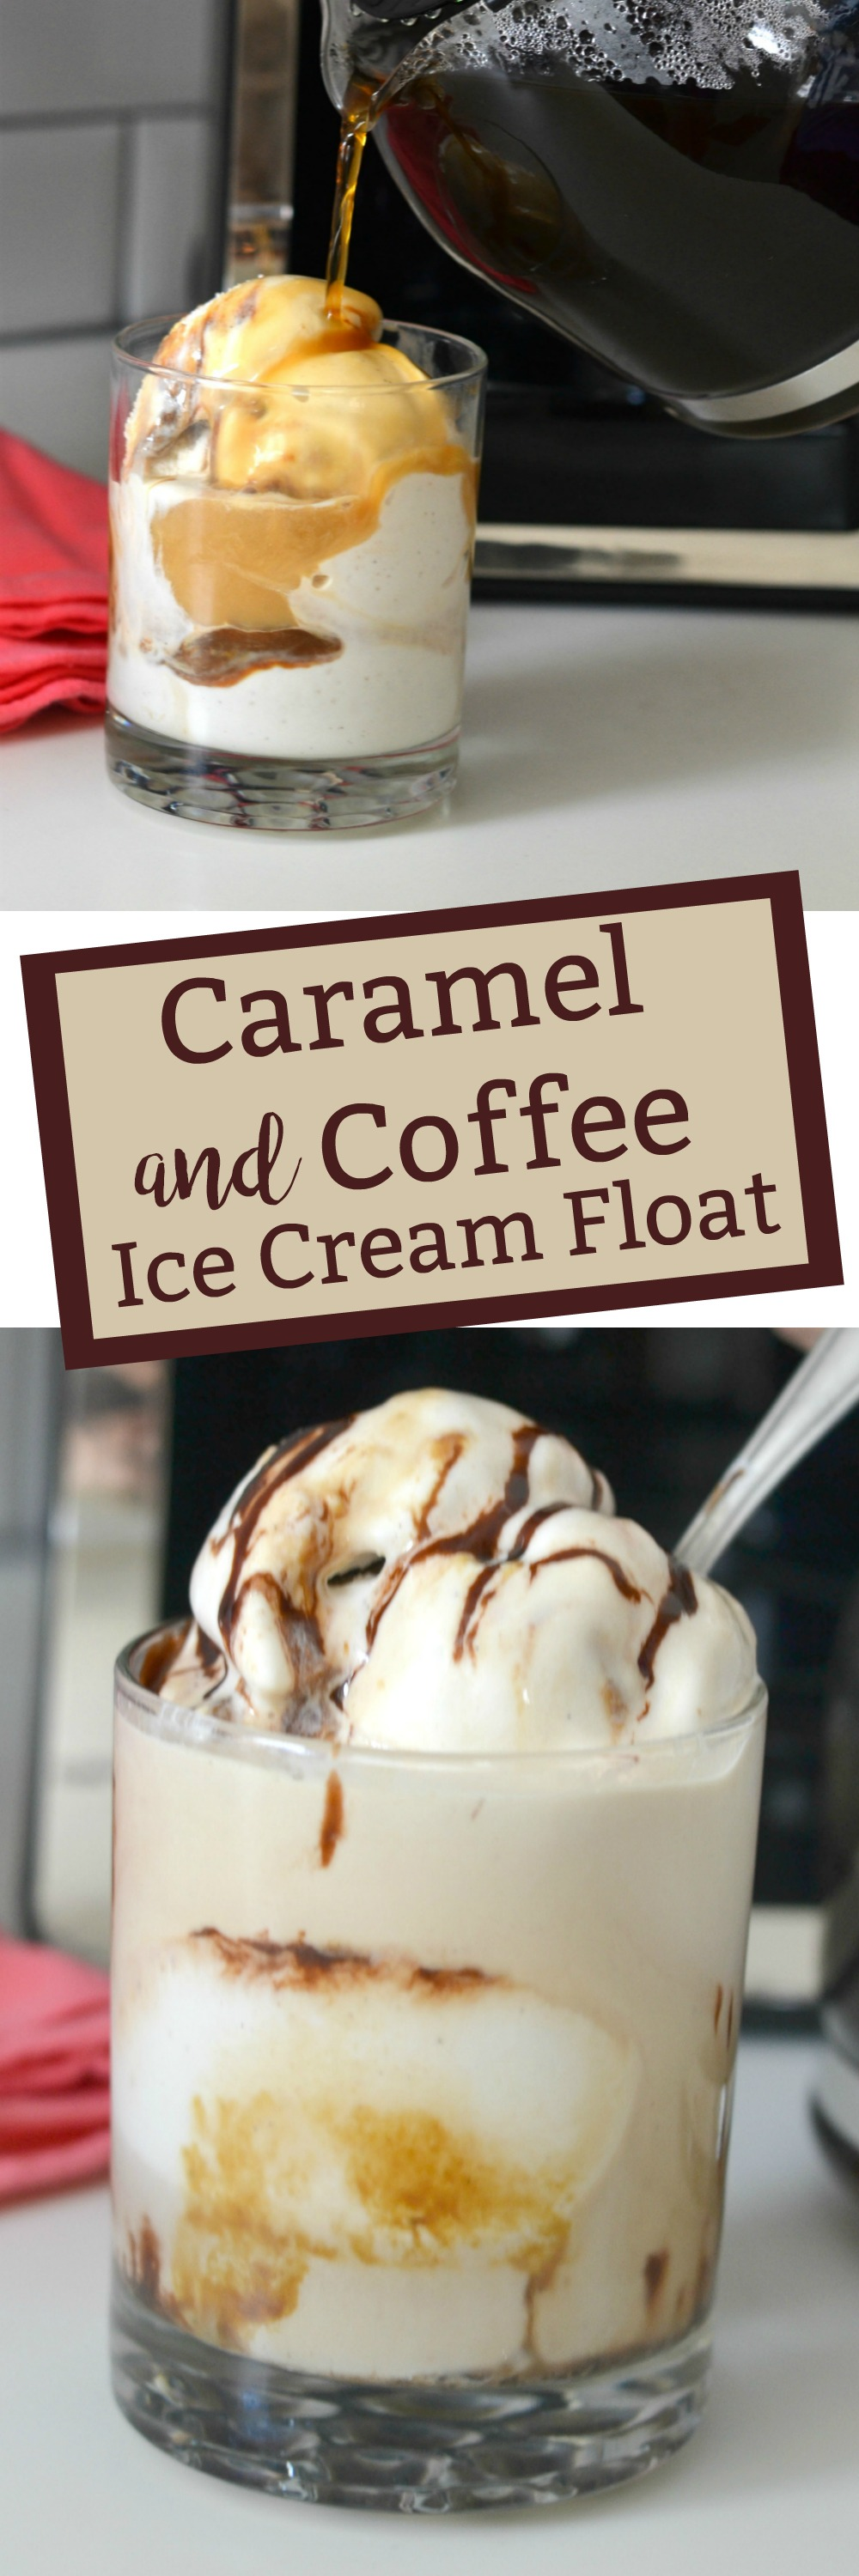 Caramel and Coffee Ice Cream Float